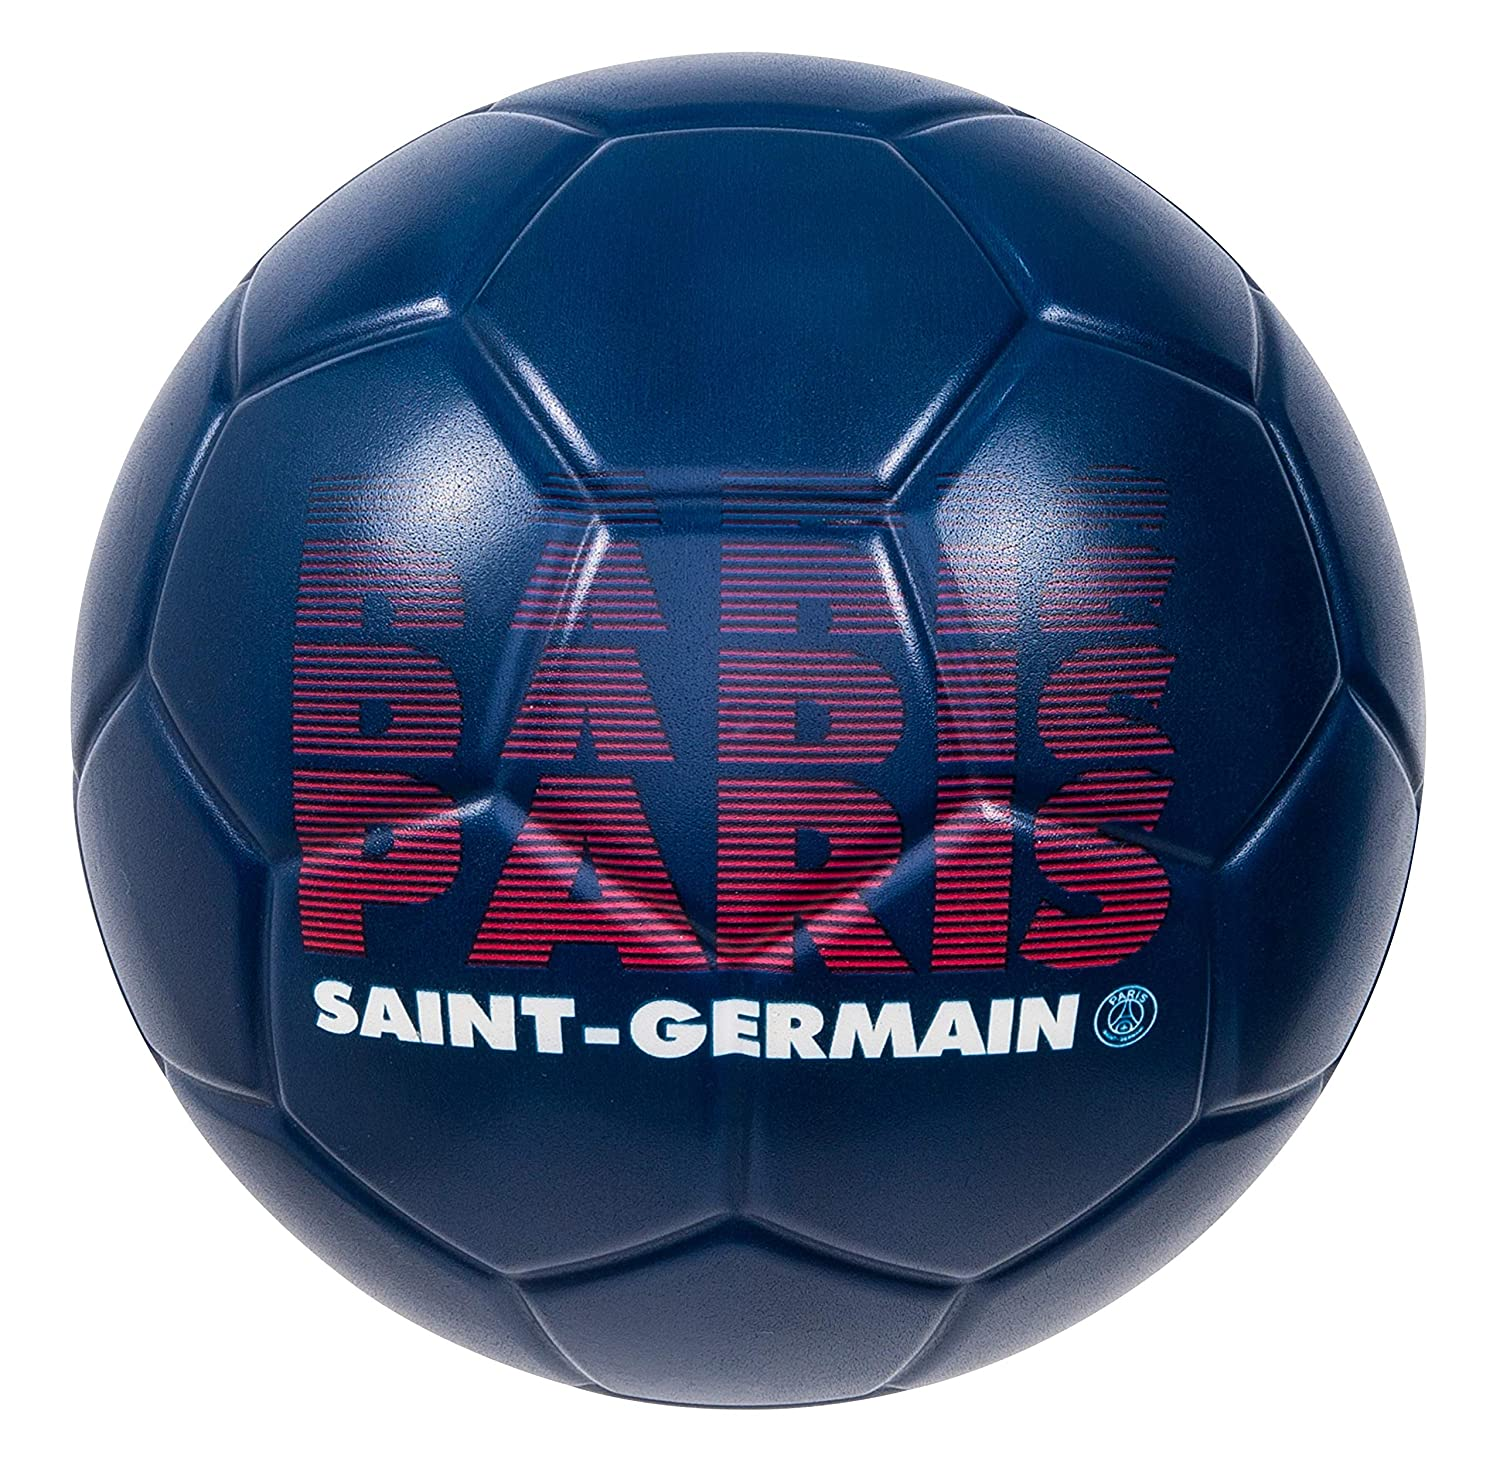 Paris Saint Germain Balón Espuma T 4: Amazon.es: Deportes y aire libre